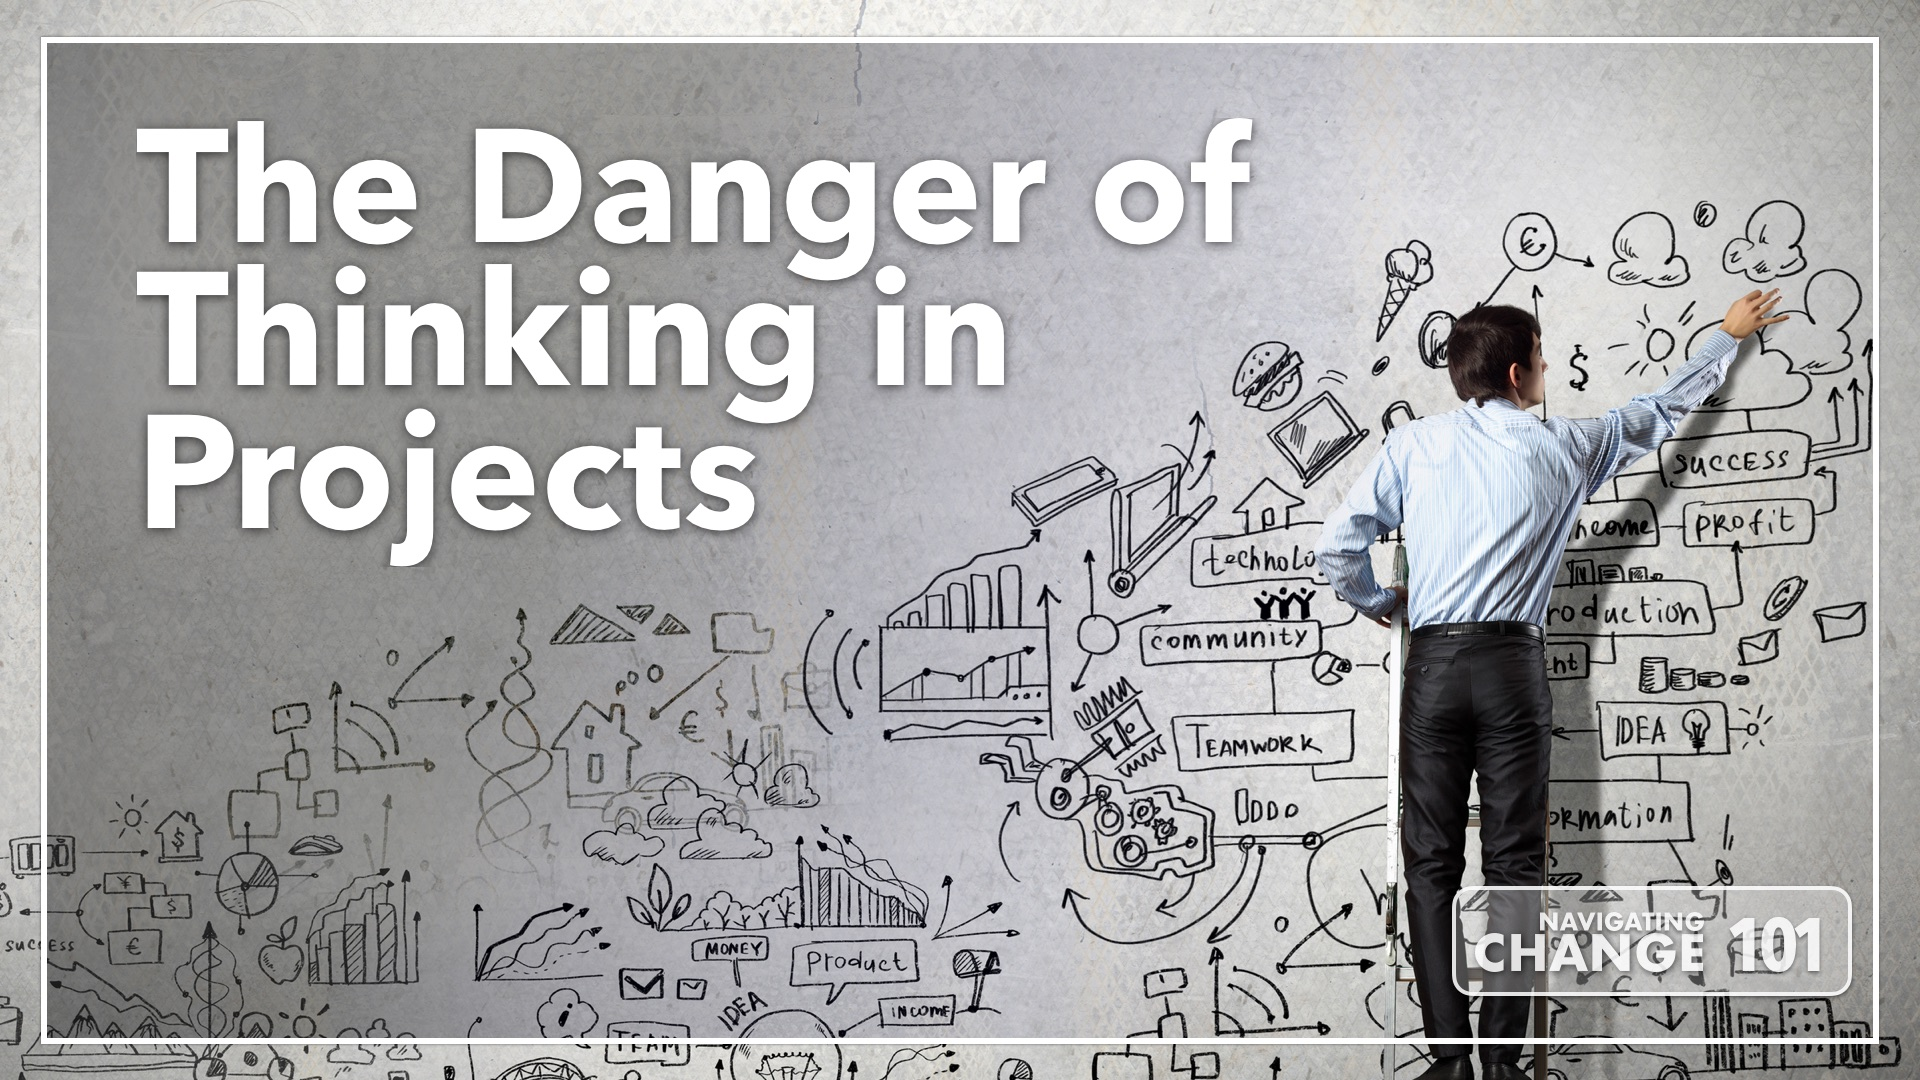 Listen to The Danger of Thinking in Projects on Navigating Change The Education Podcast